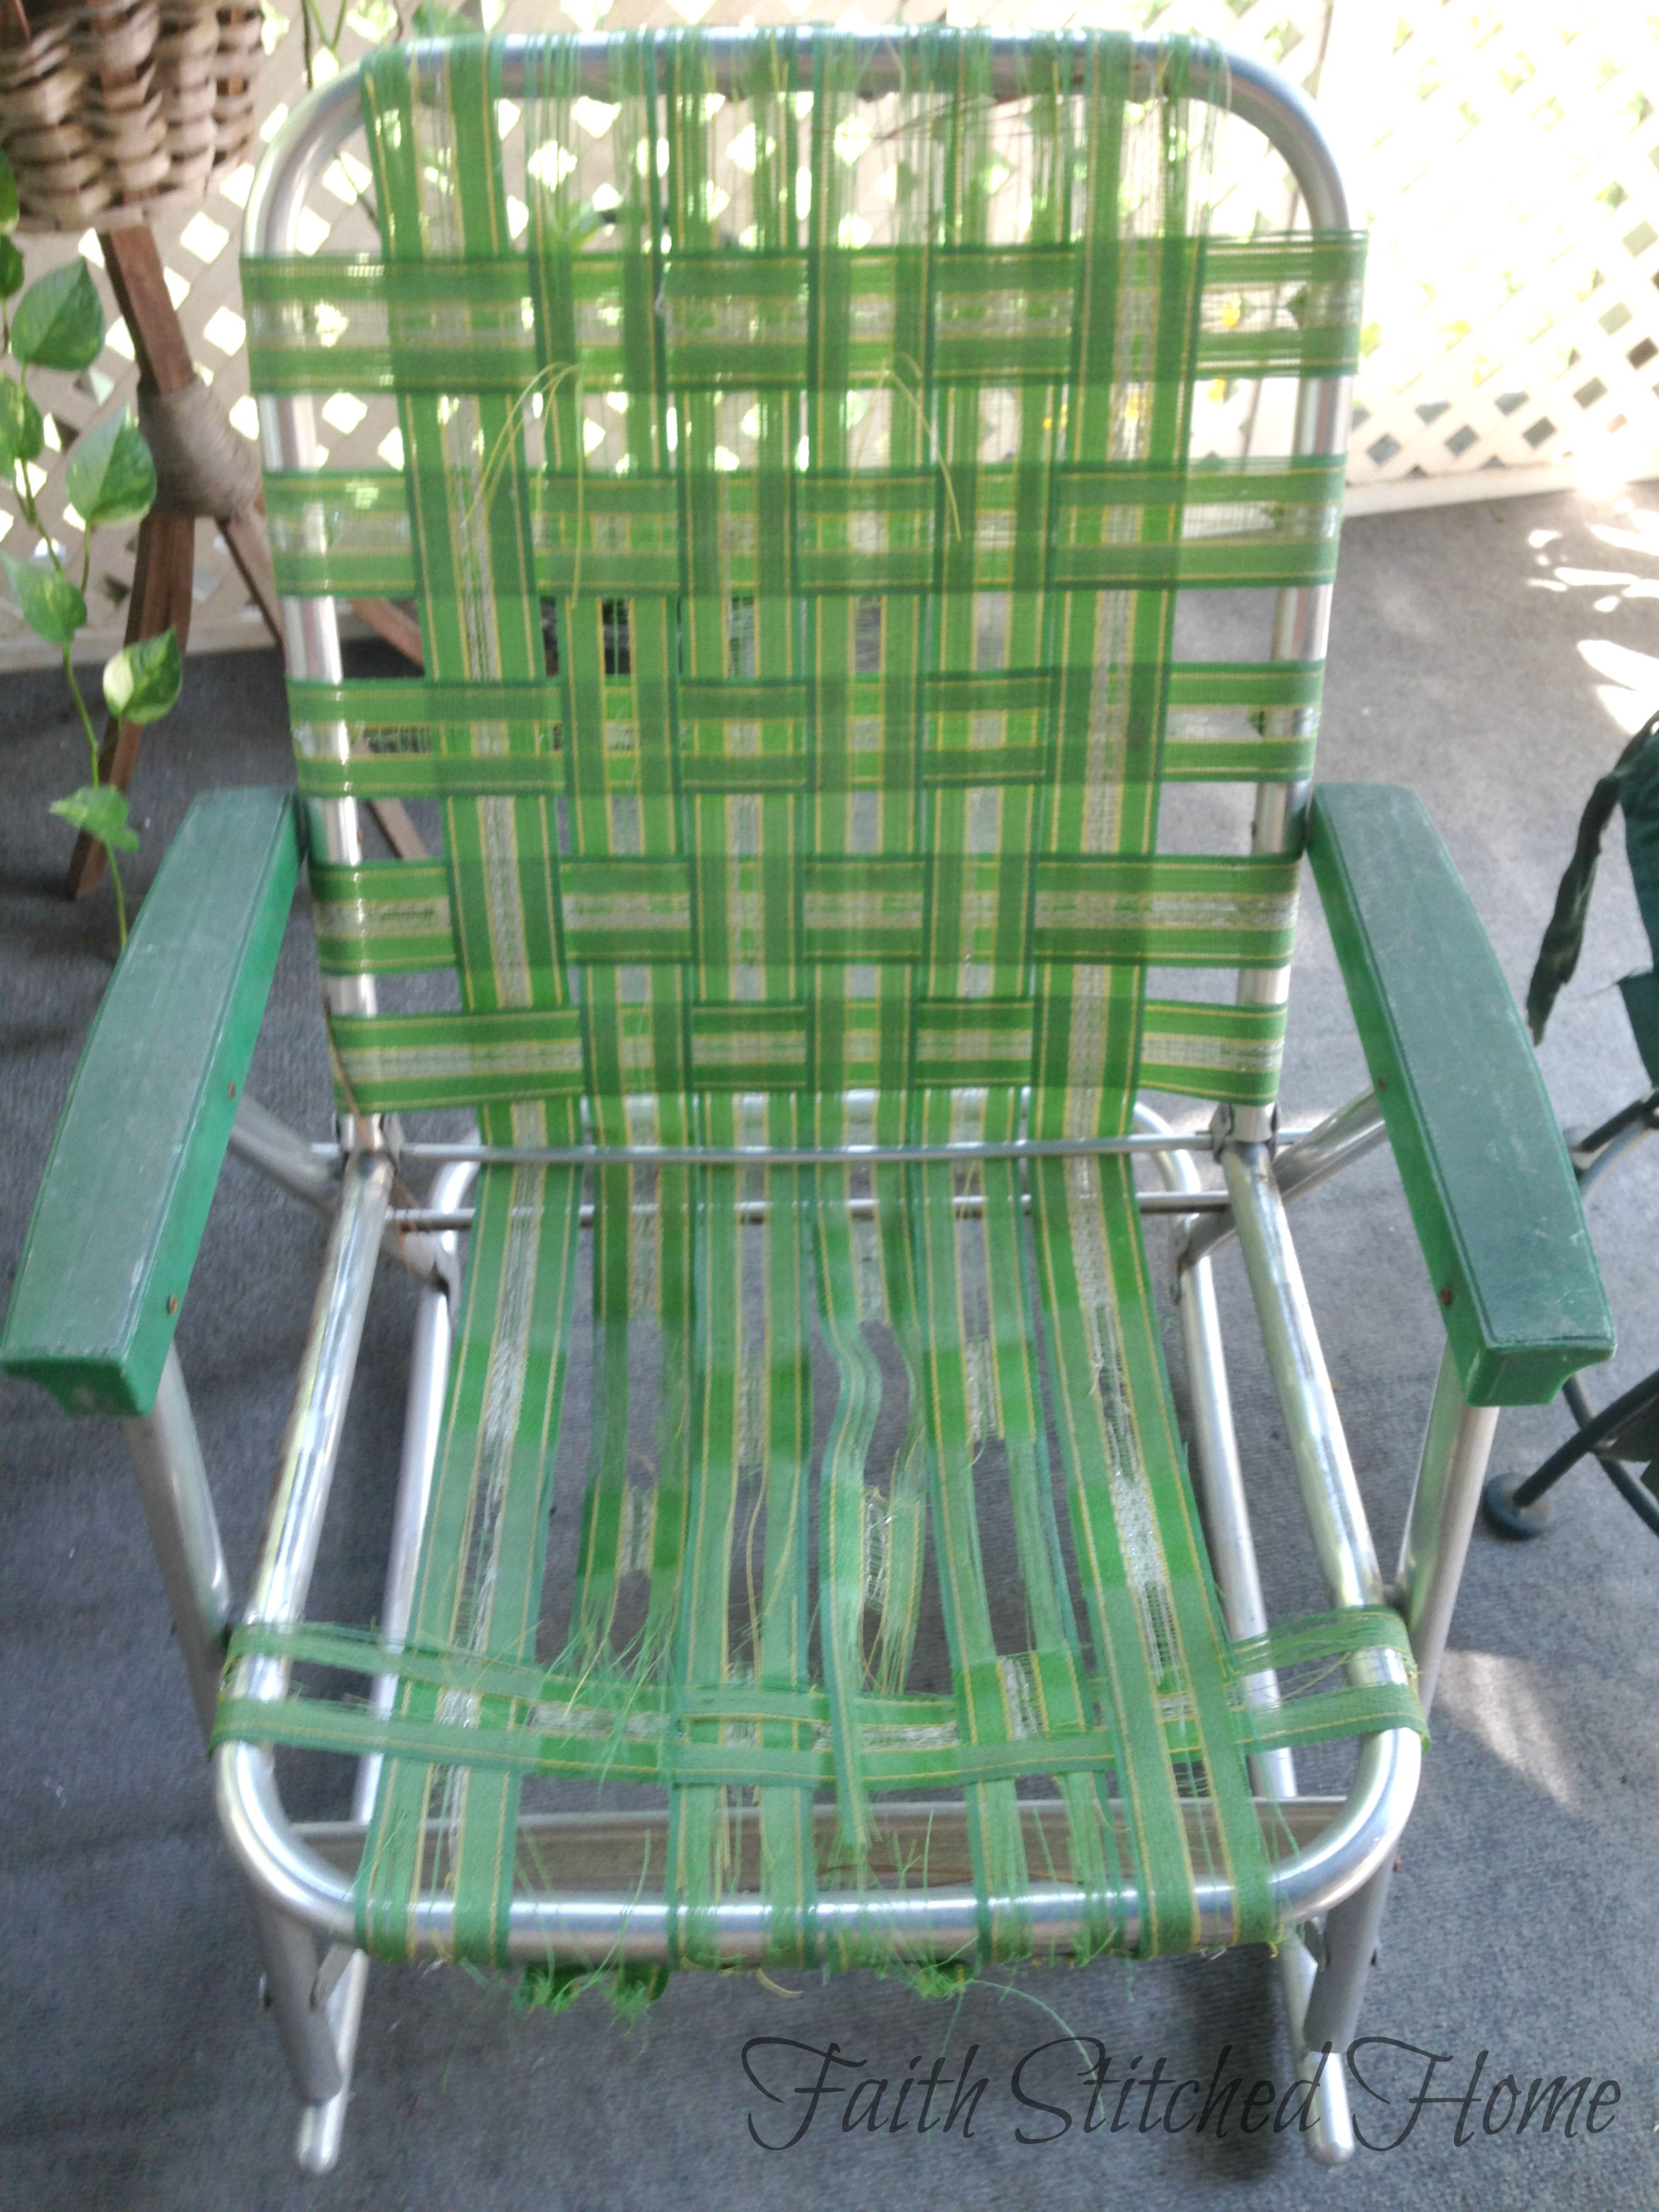 Repairing a Vintage Webbed Lawn Chair